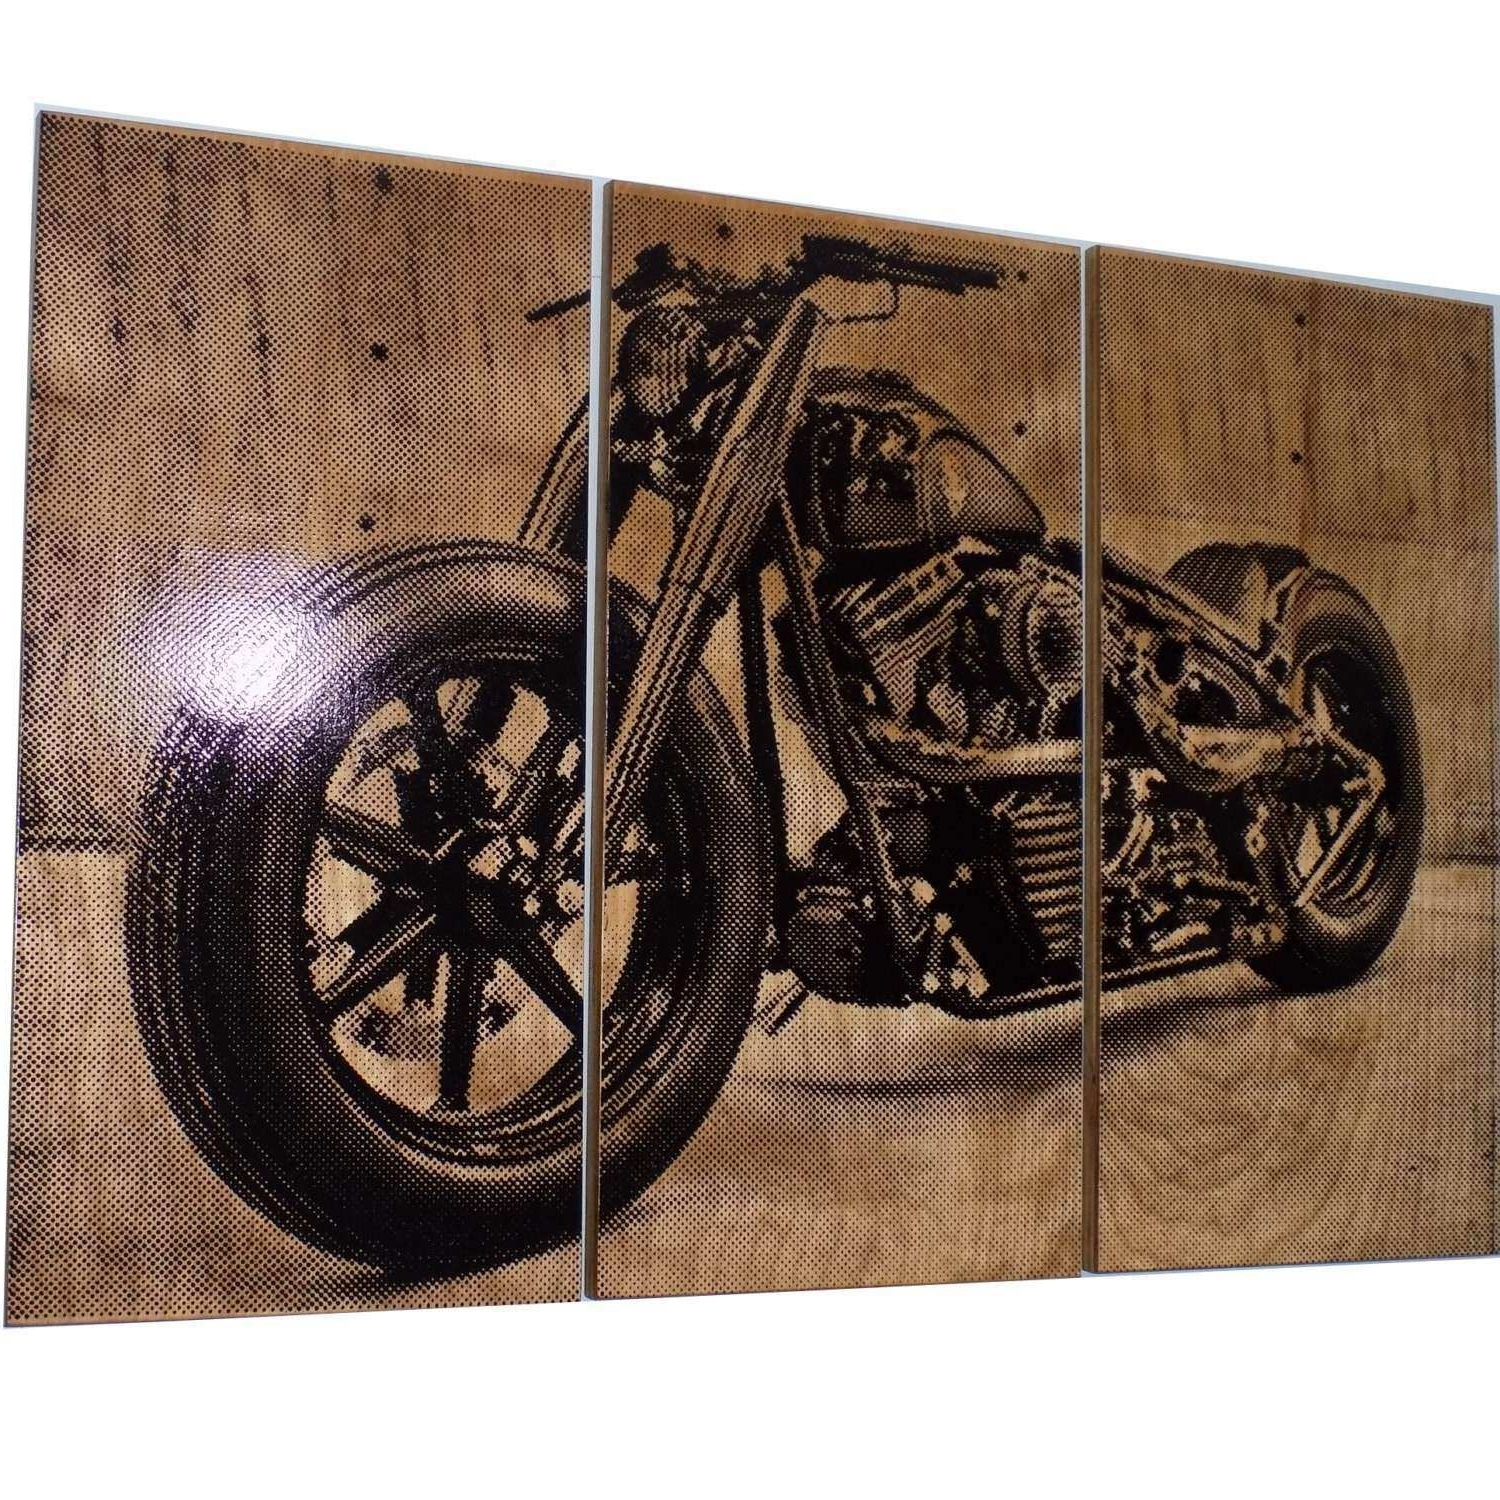 Most Recent Harley Davidson Wall Art Intended For Harley Davidson Prints Wall Art Fresh Harley Davidson Fatboy Softail (View 11 of 15)